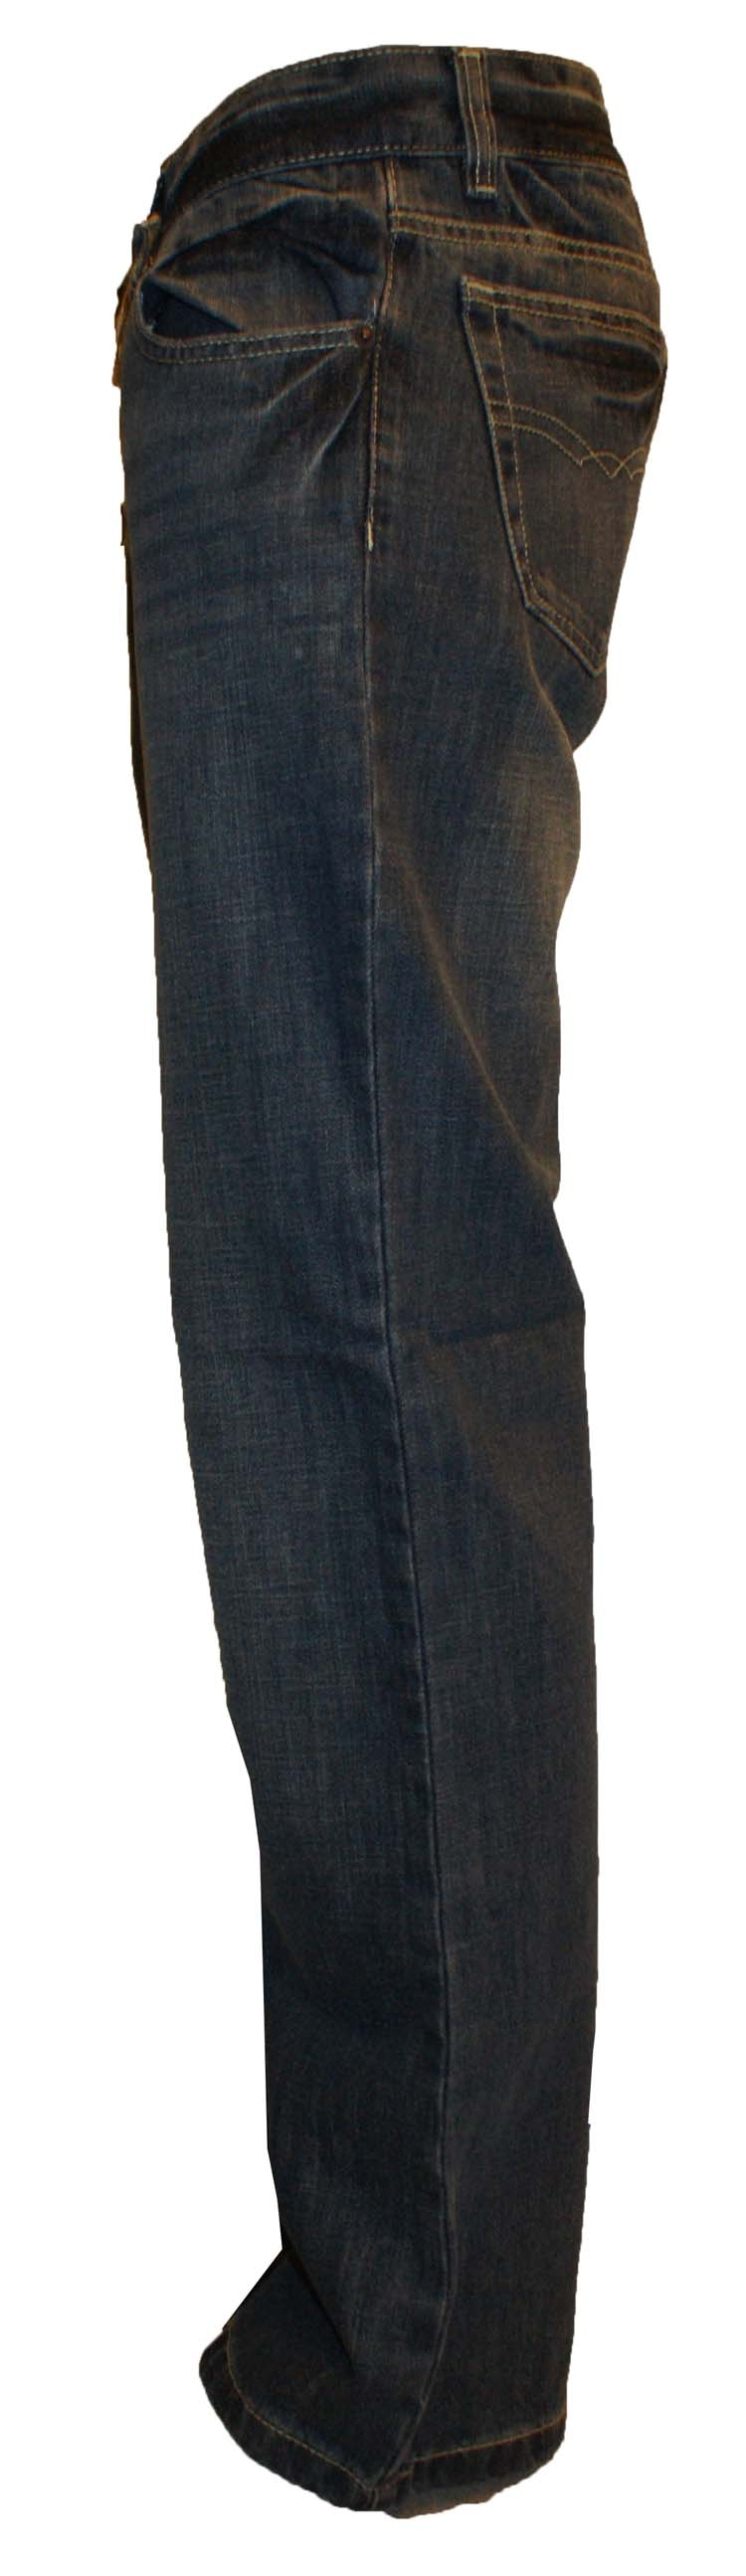 "Colorado / Oklahoma jeans  "" Lake ""  Dirty wash used"